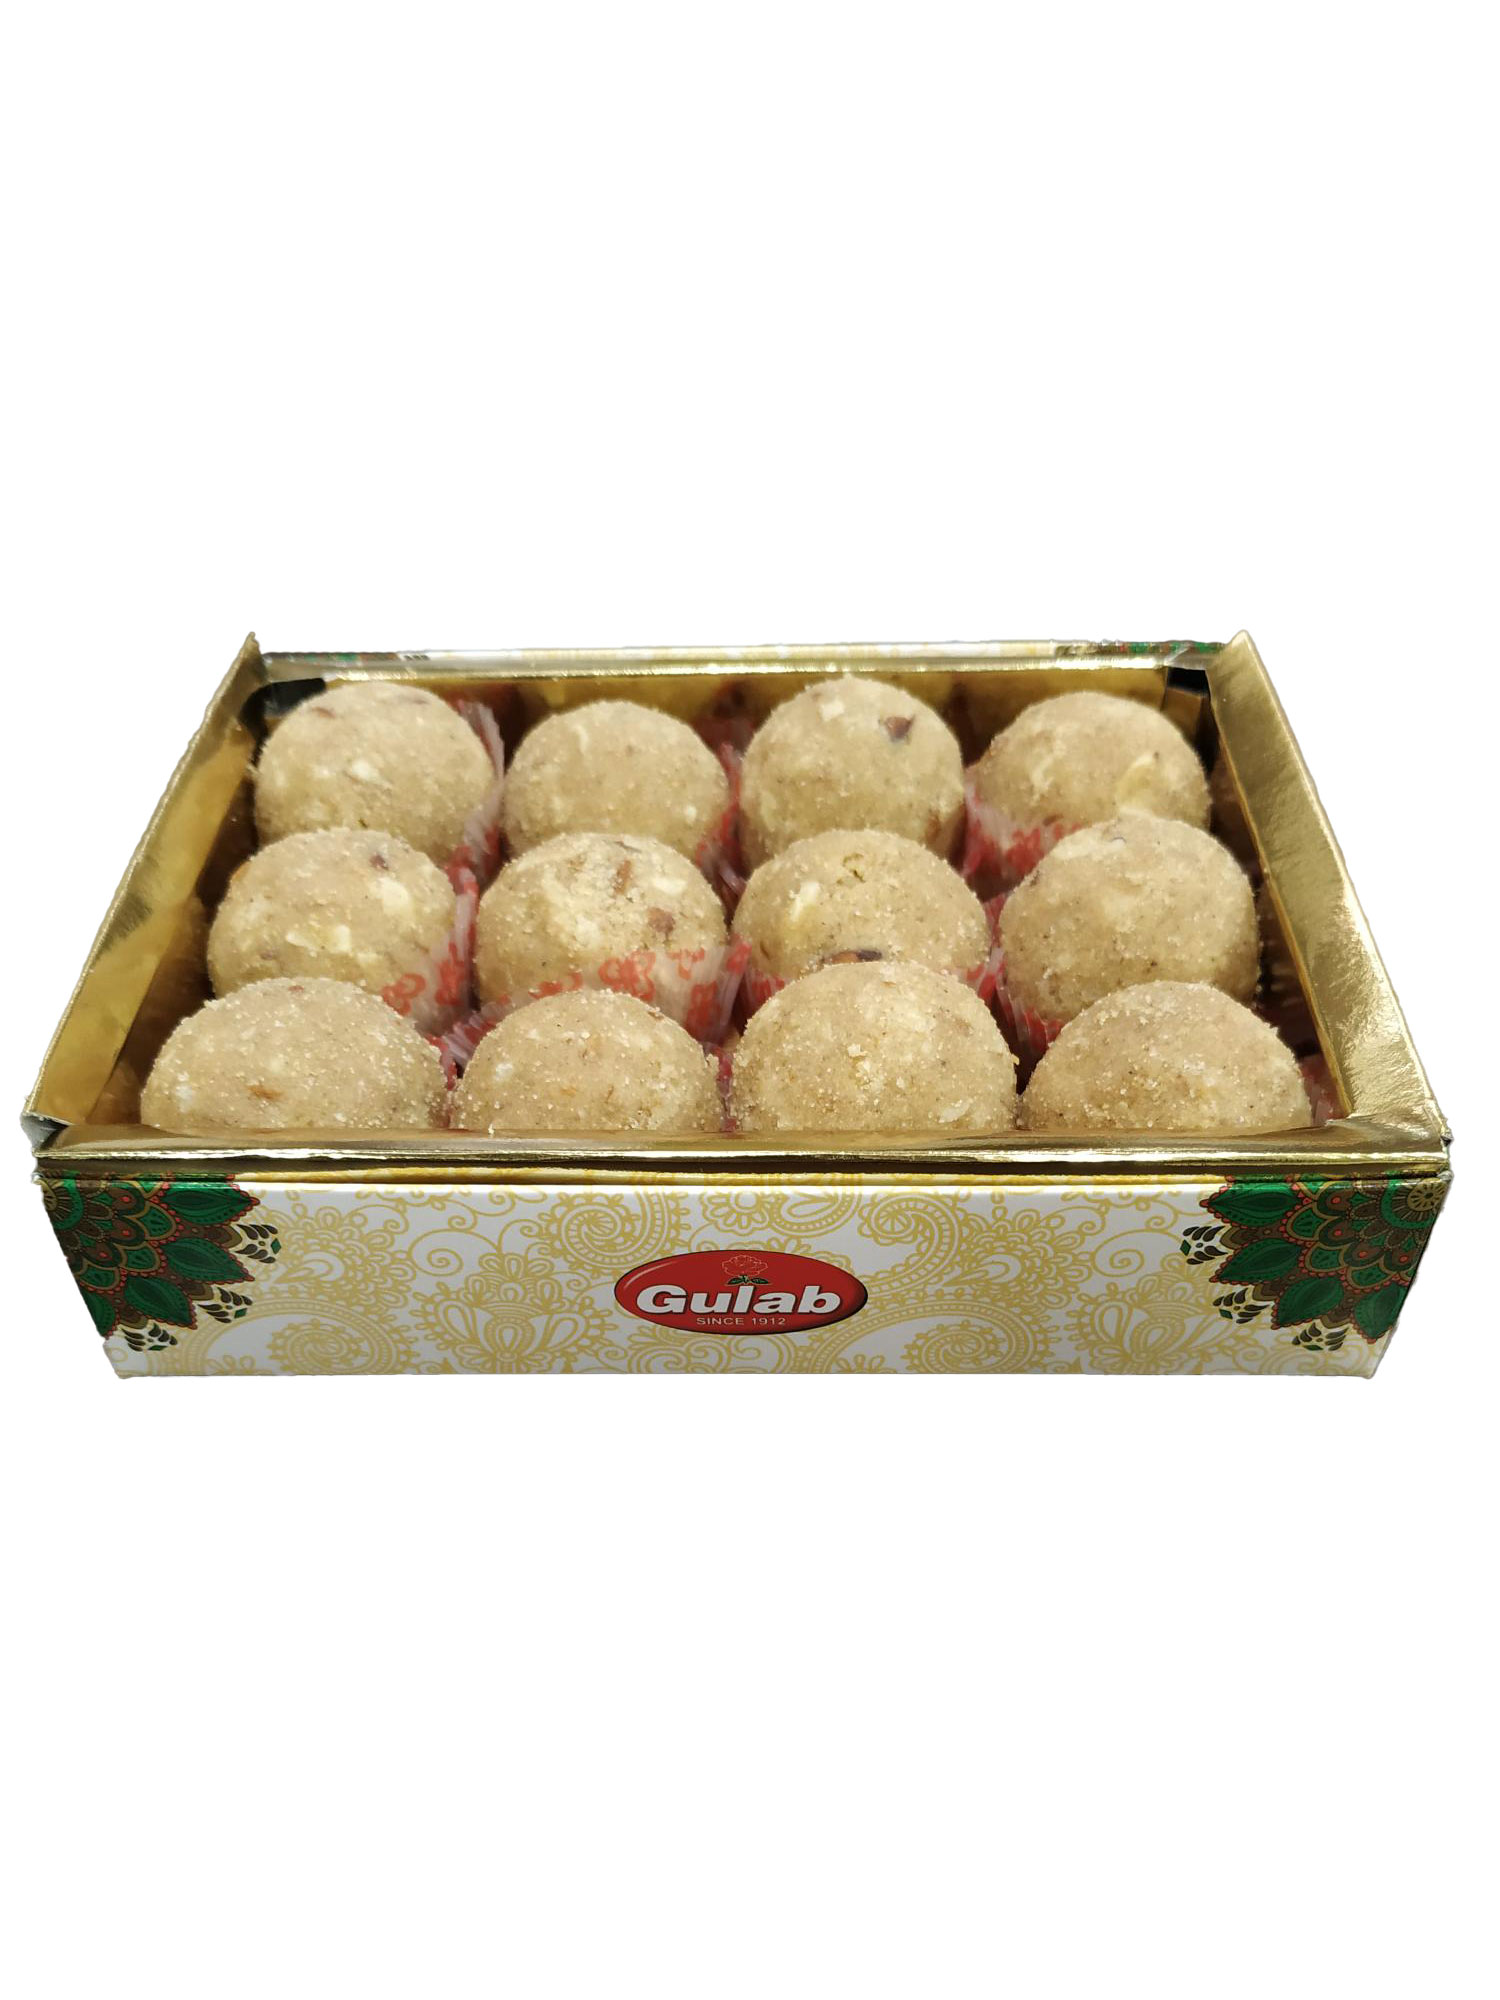 Gulab Goond Laddu 500gm